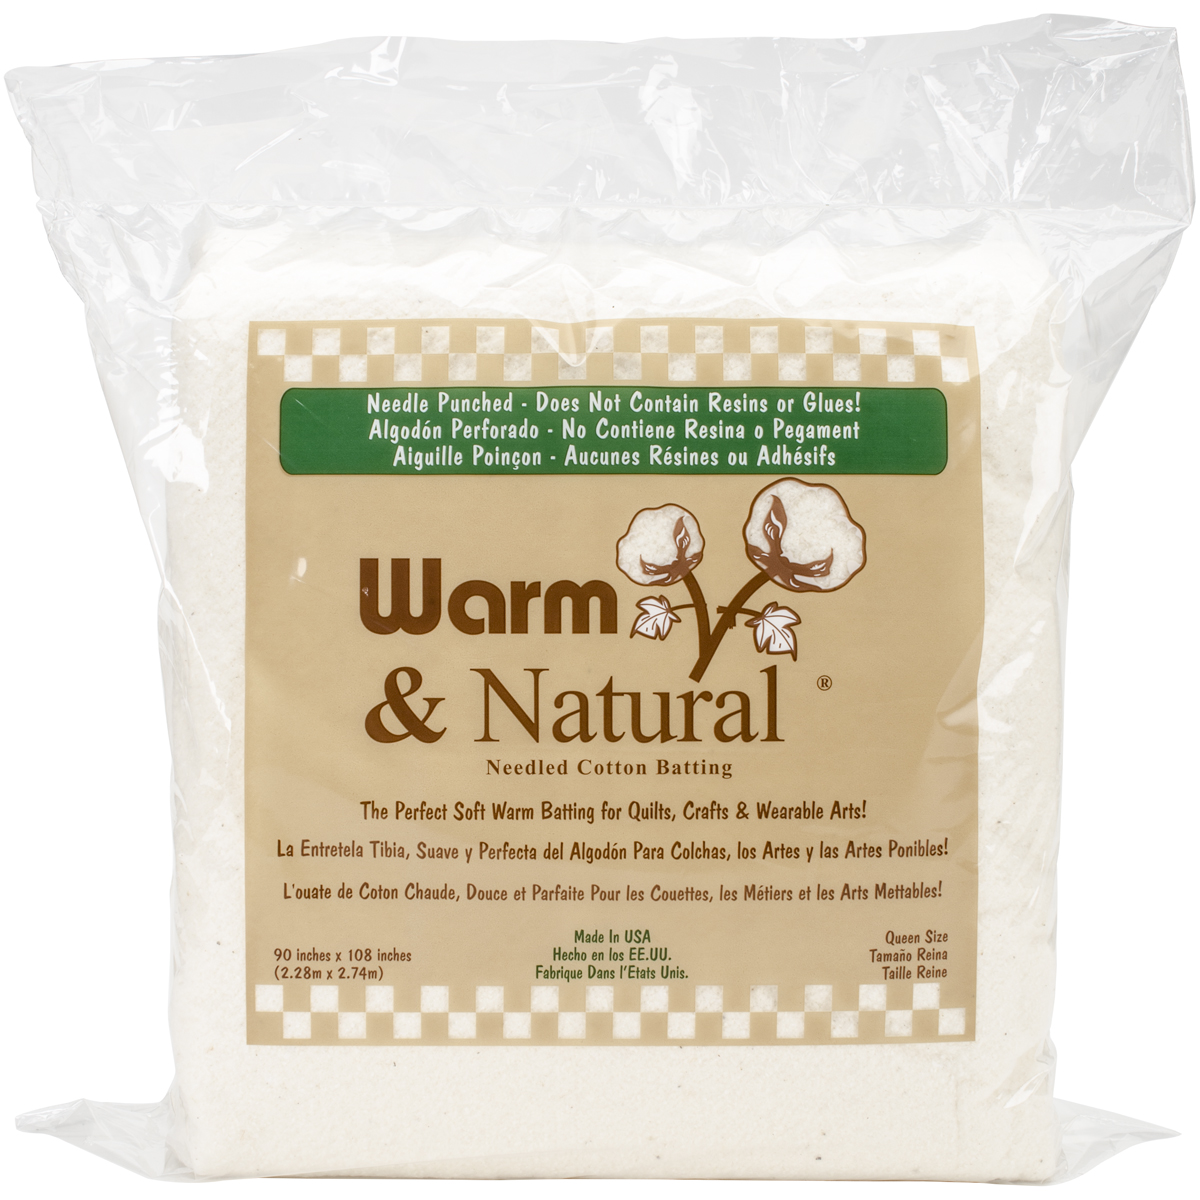 "The Warm Company Warm & Natural Cotton Batting, Queen Size, 90"" x 108"""